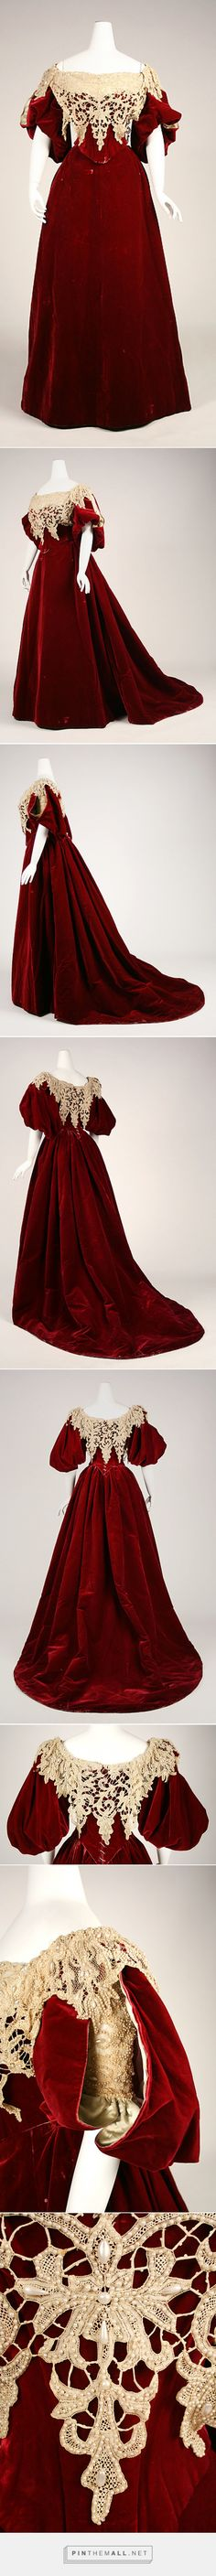 Evening dress by House of Worth 1893-95 French | The Metropolitan Museum of Art